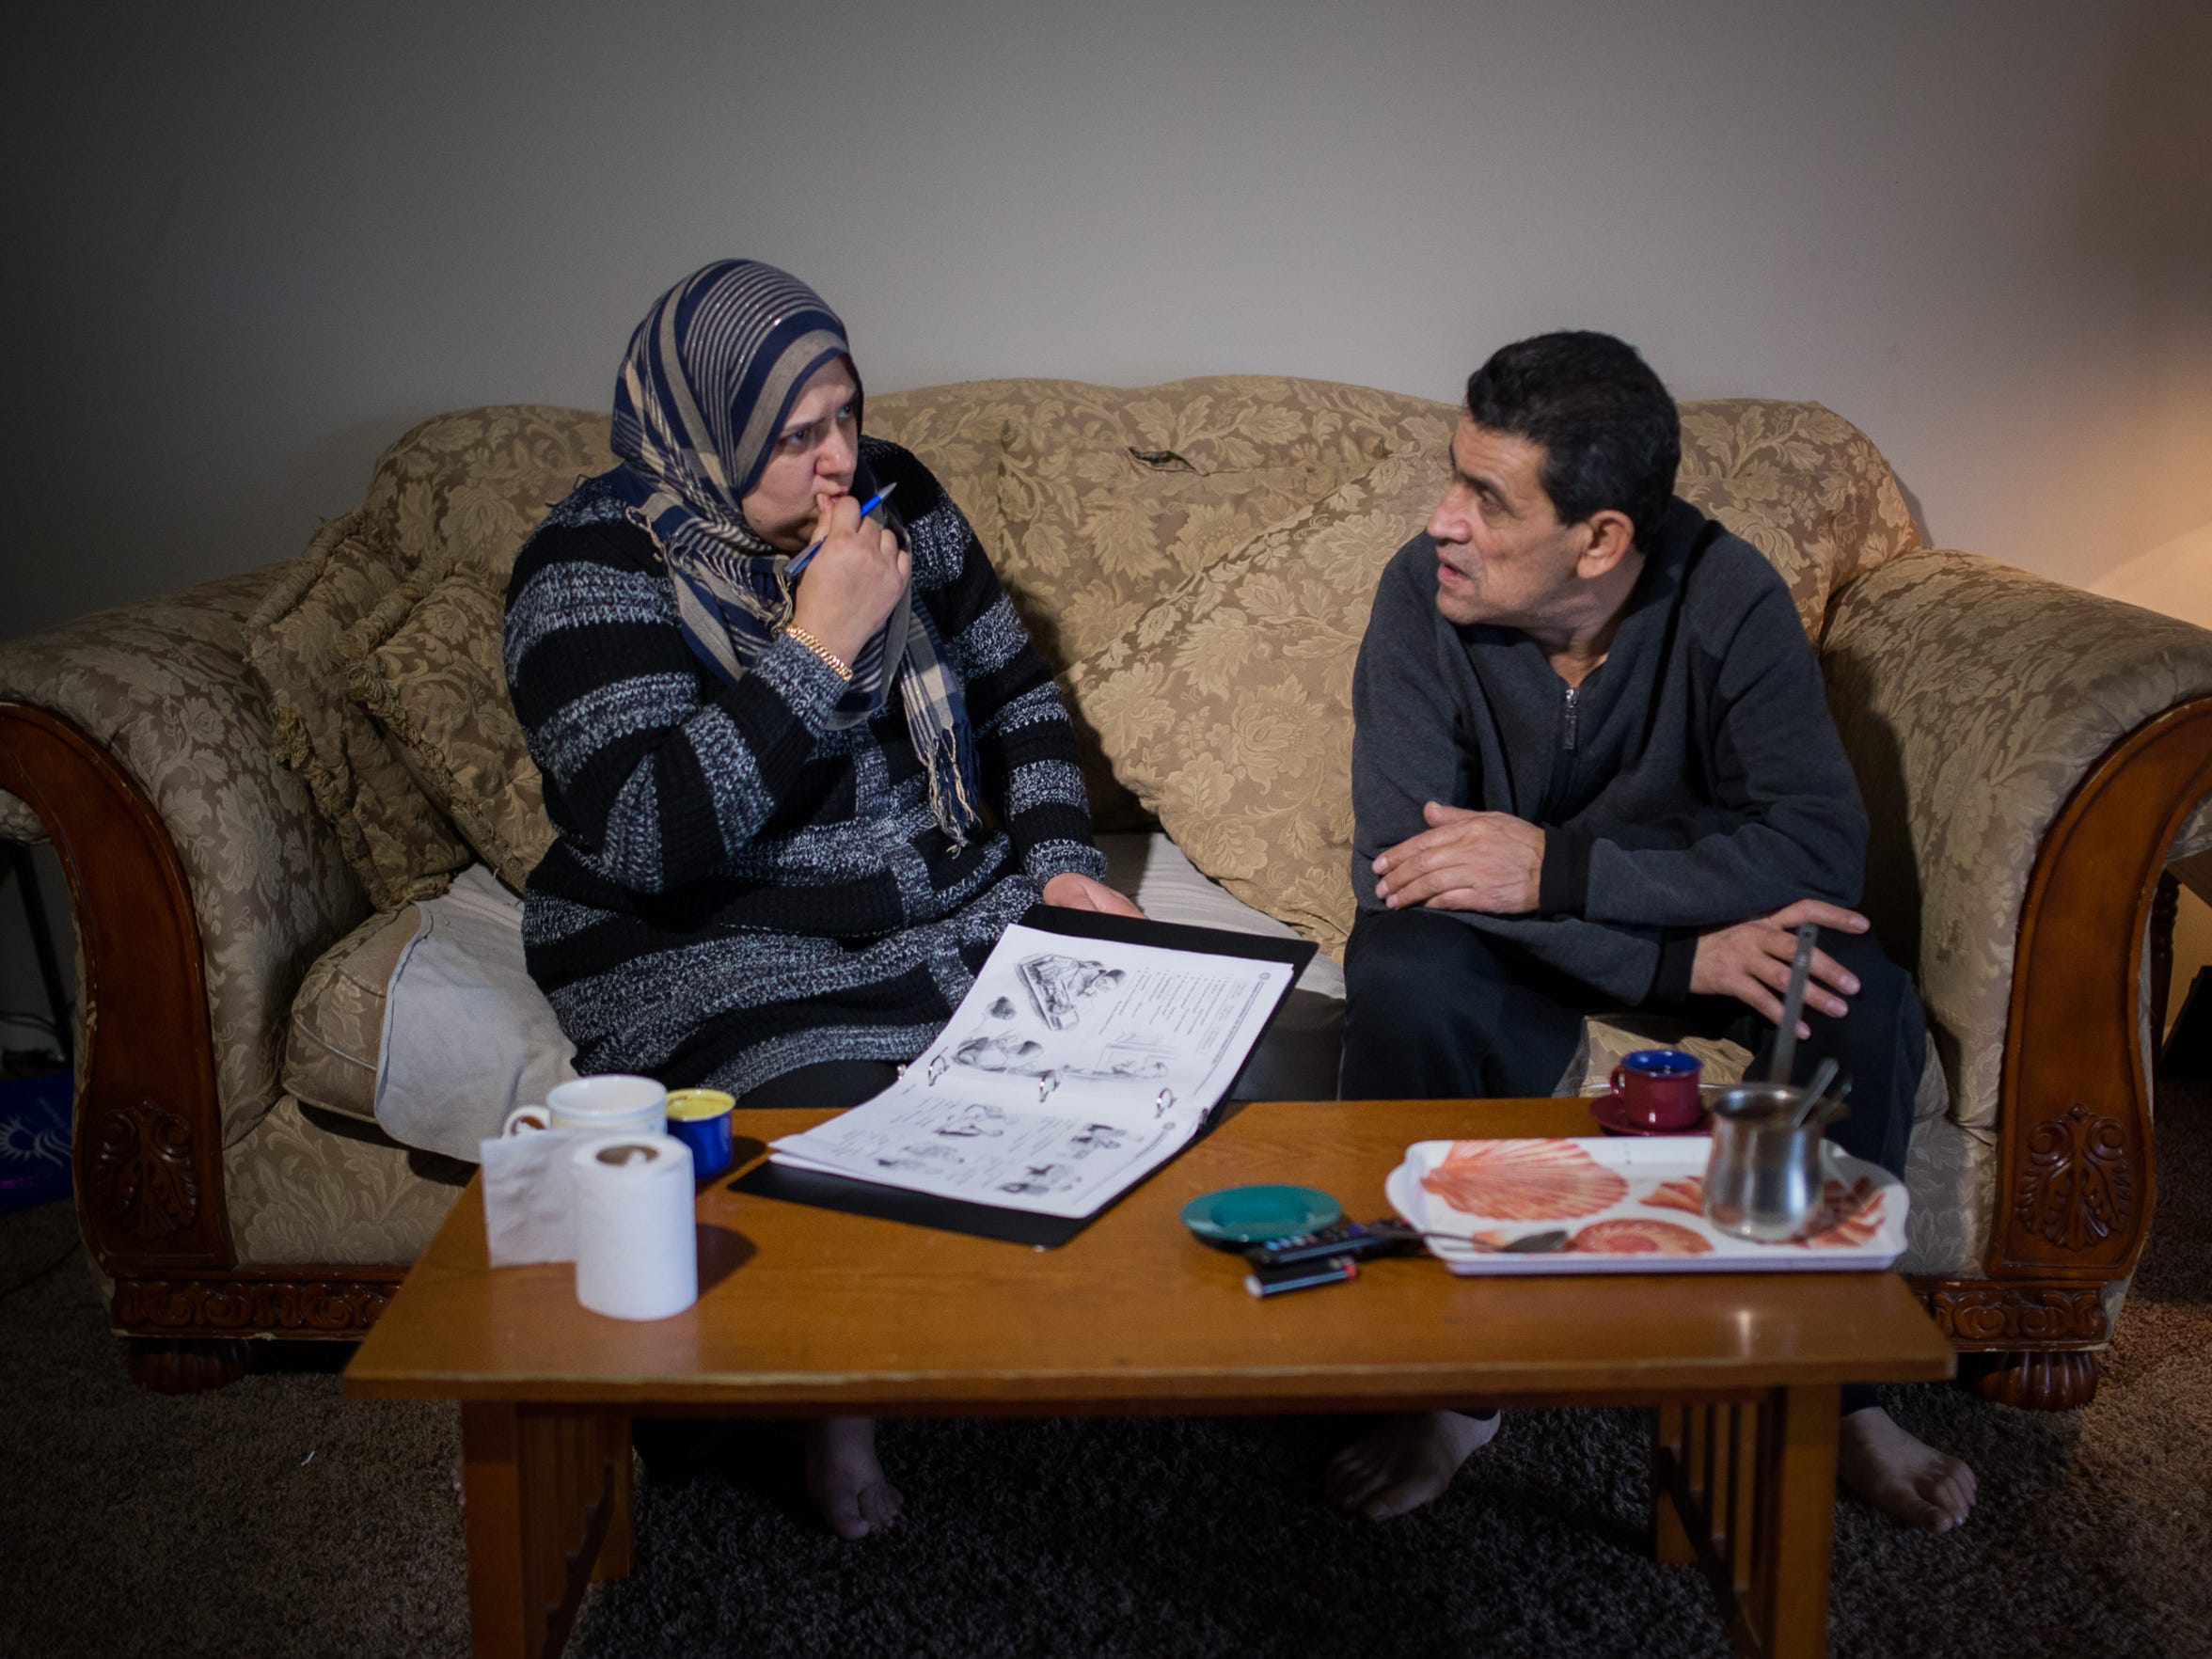 Radwan Mughrbel, 52, and his wife Sanaa Hamada, 42, refugees from  Syria, work on homework in their Bloomfield Hills apartment before their evening English as a Second Language class (ESL), on Wednesday, Nov. 18, 2015.